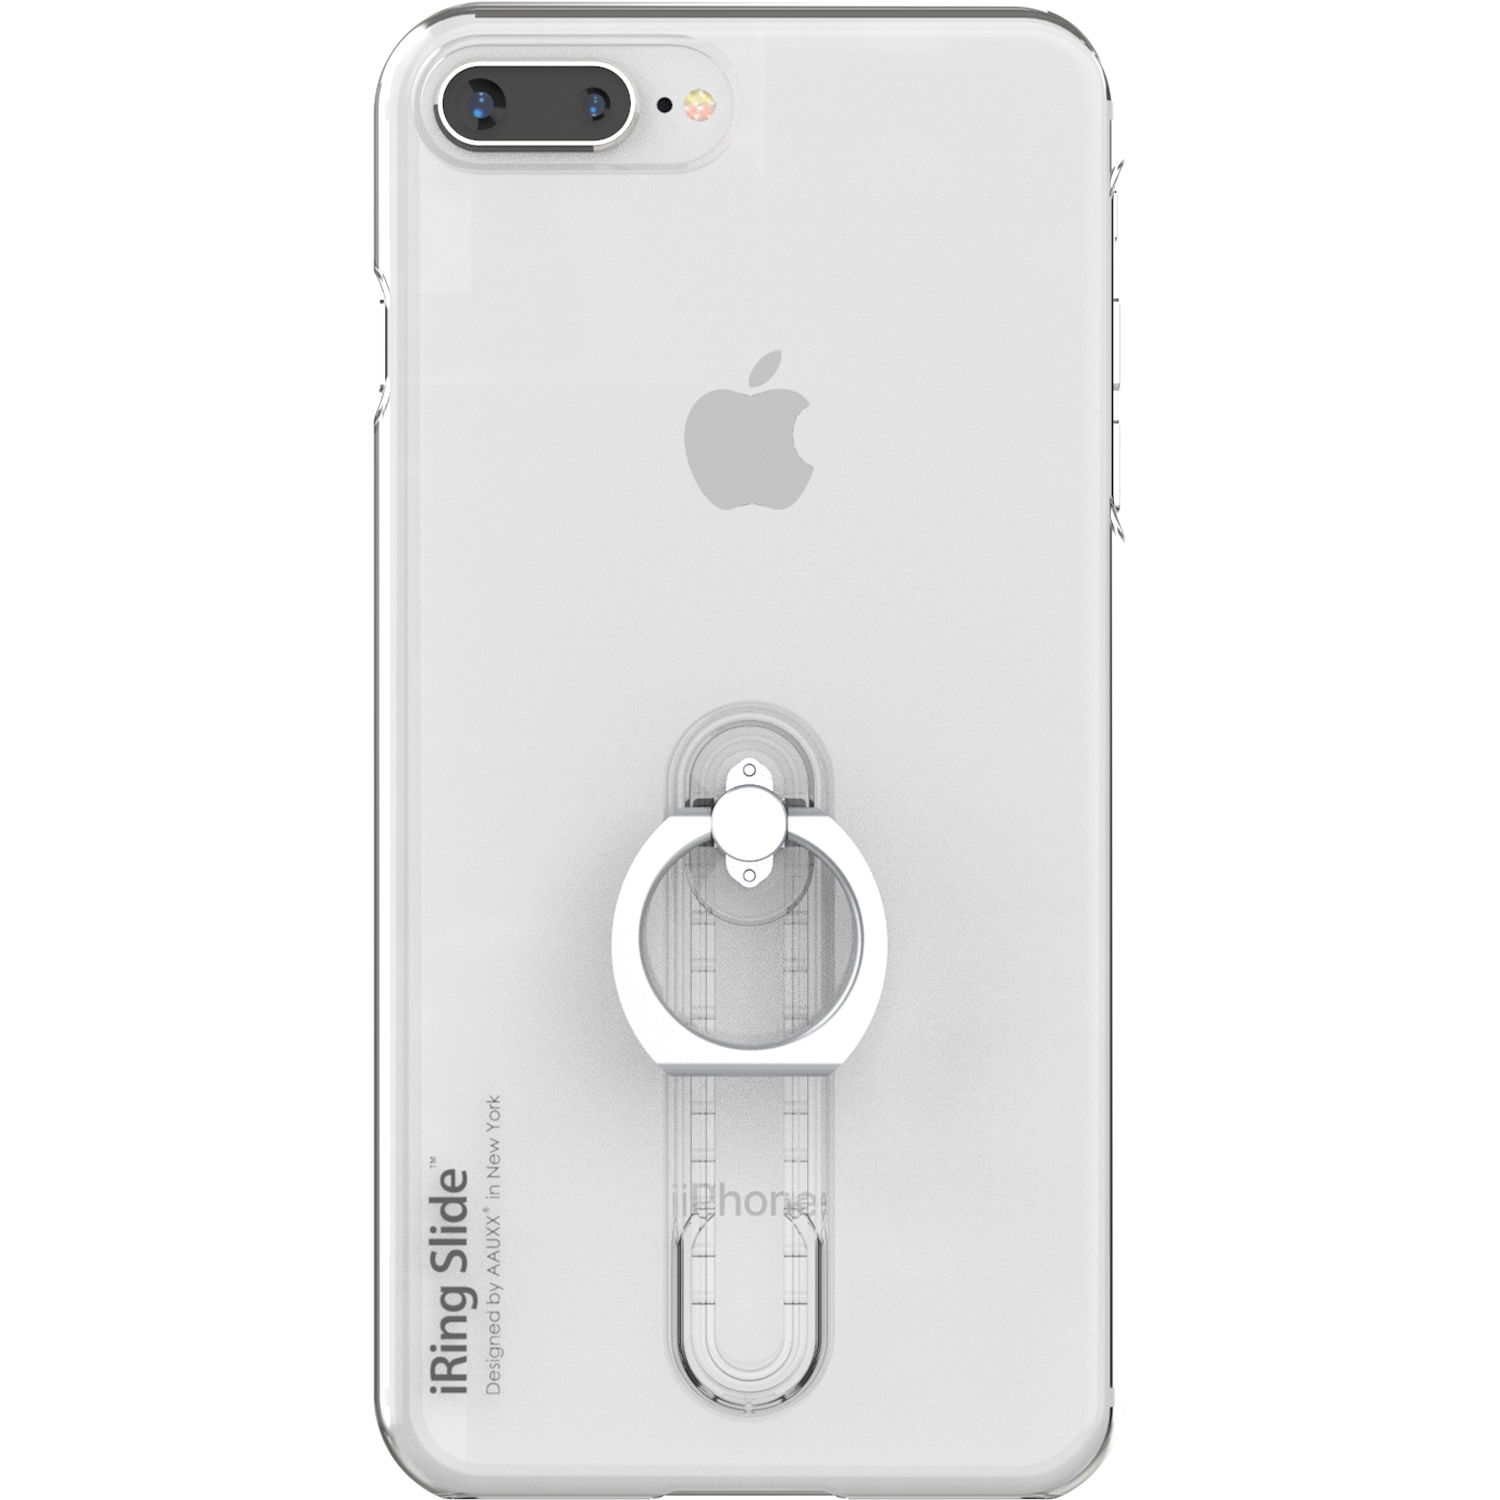 detailed look 9b2bf efb66 iRing Slide Case for iPhone 8 Plus (Clear)